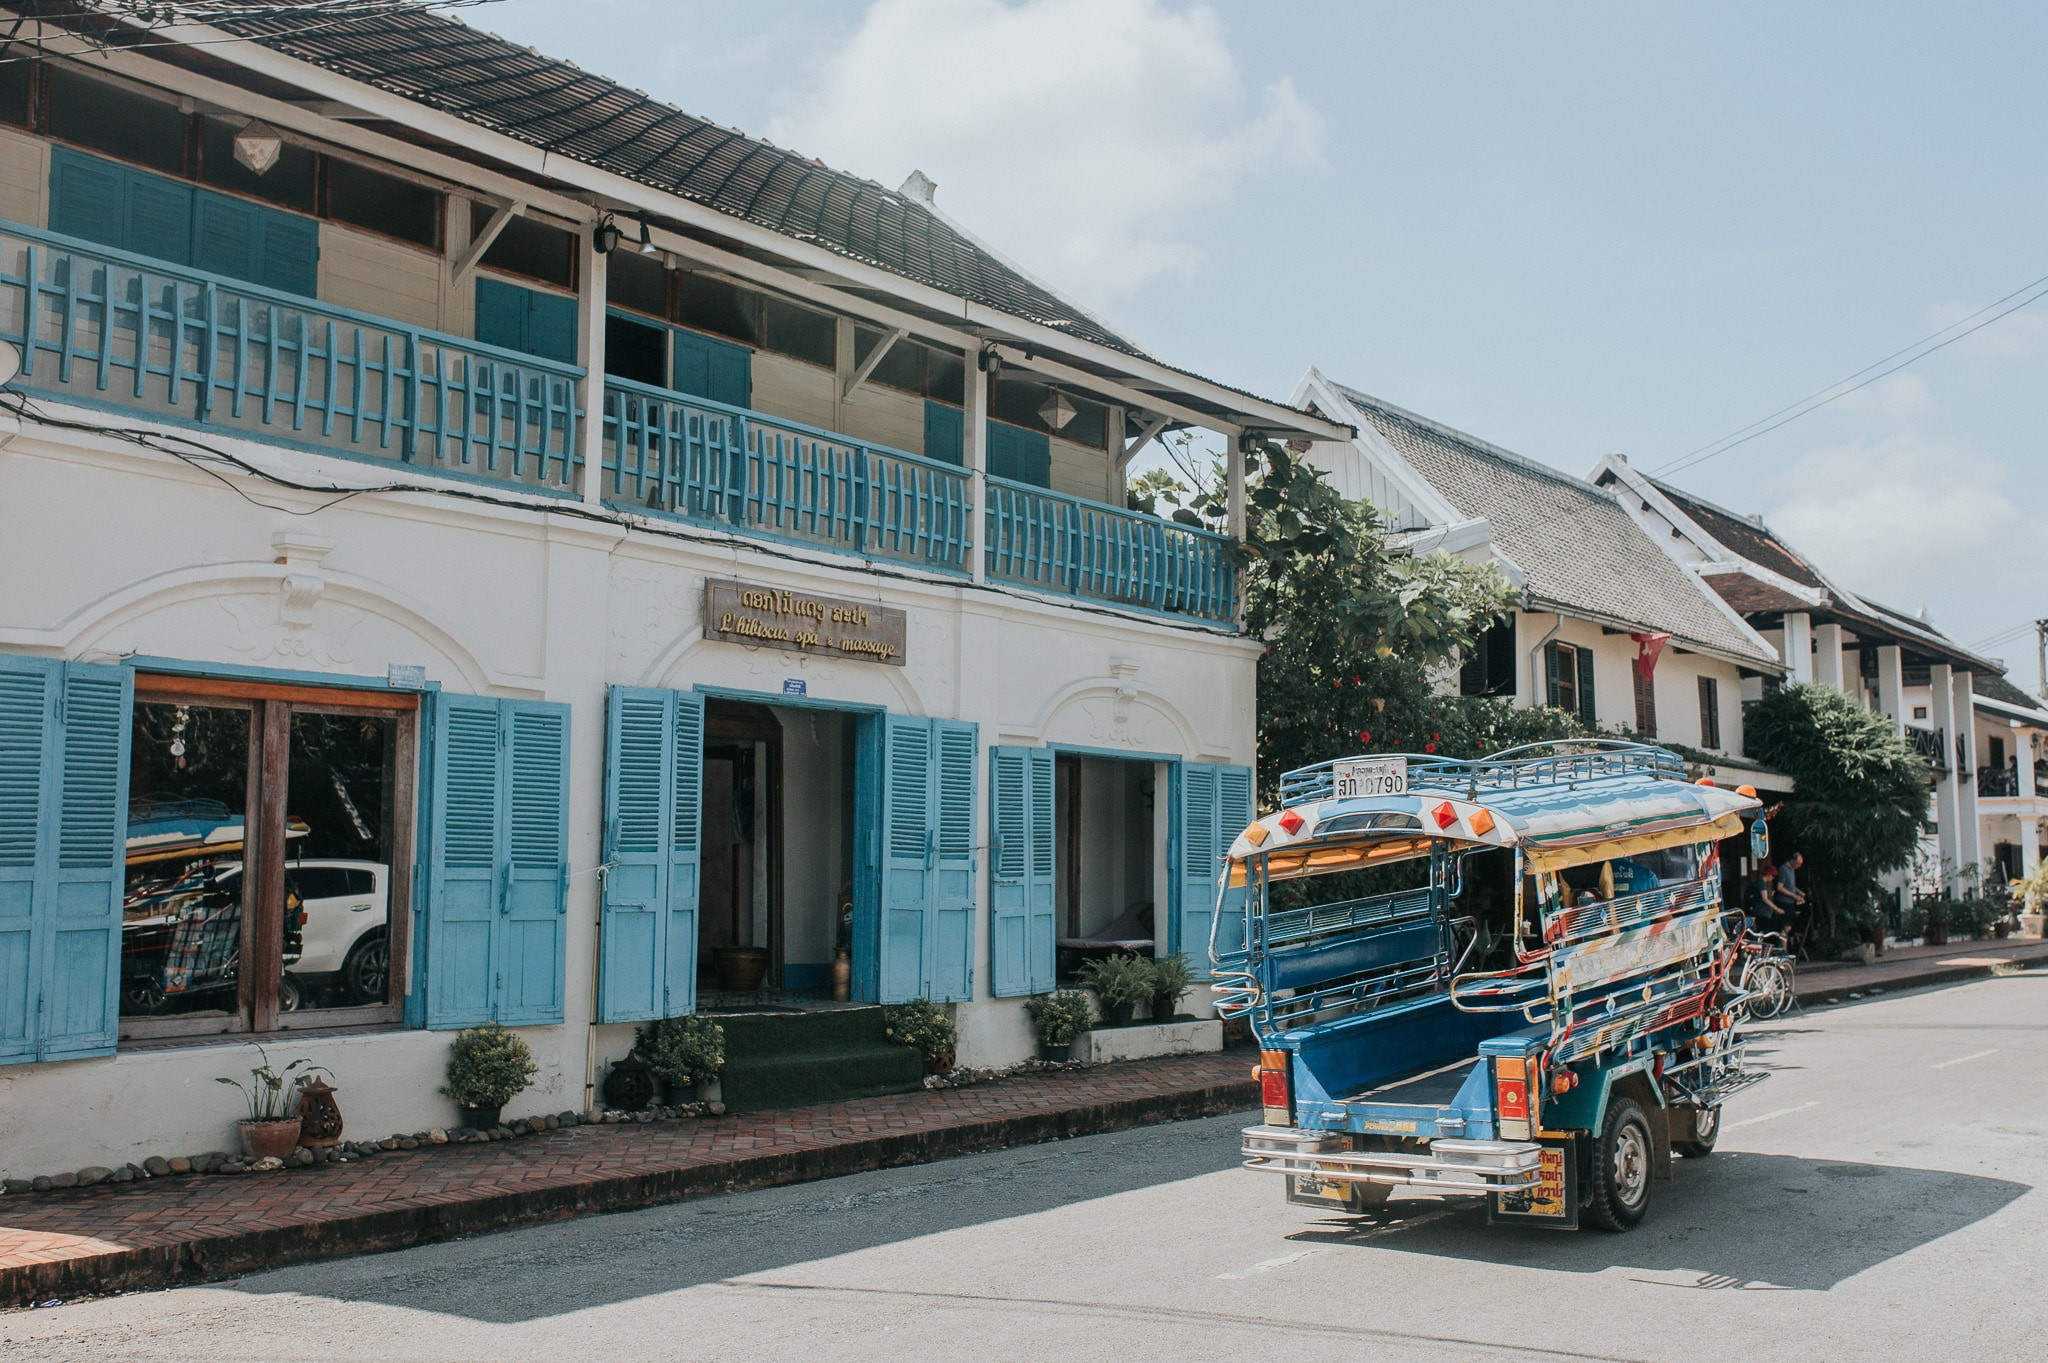 One week in Laos - Luang Prabang - Tuk tuk in front of colonial house